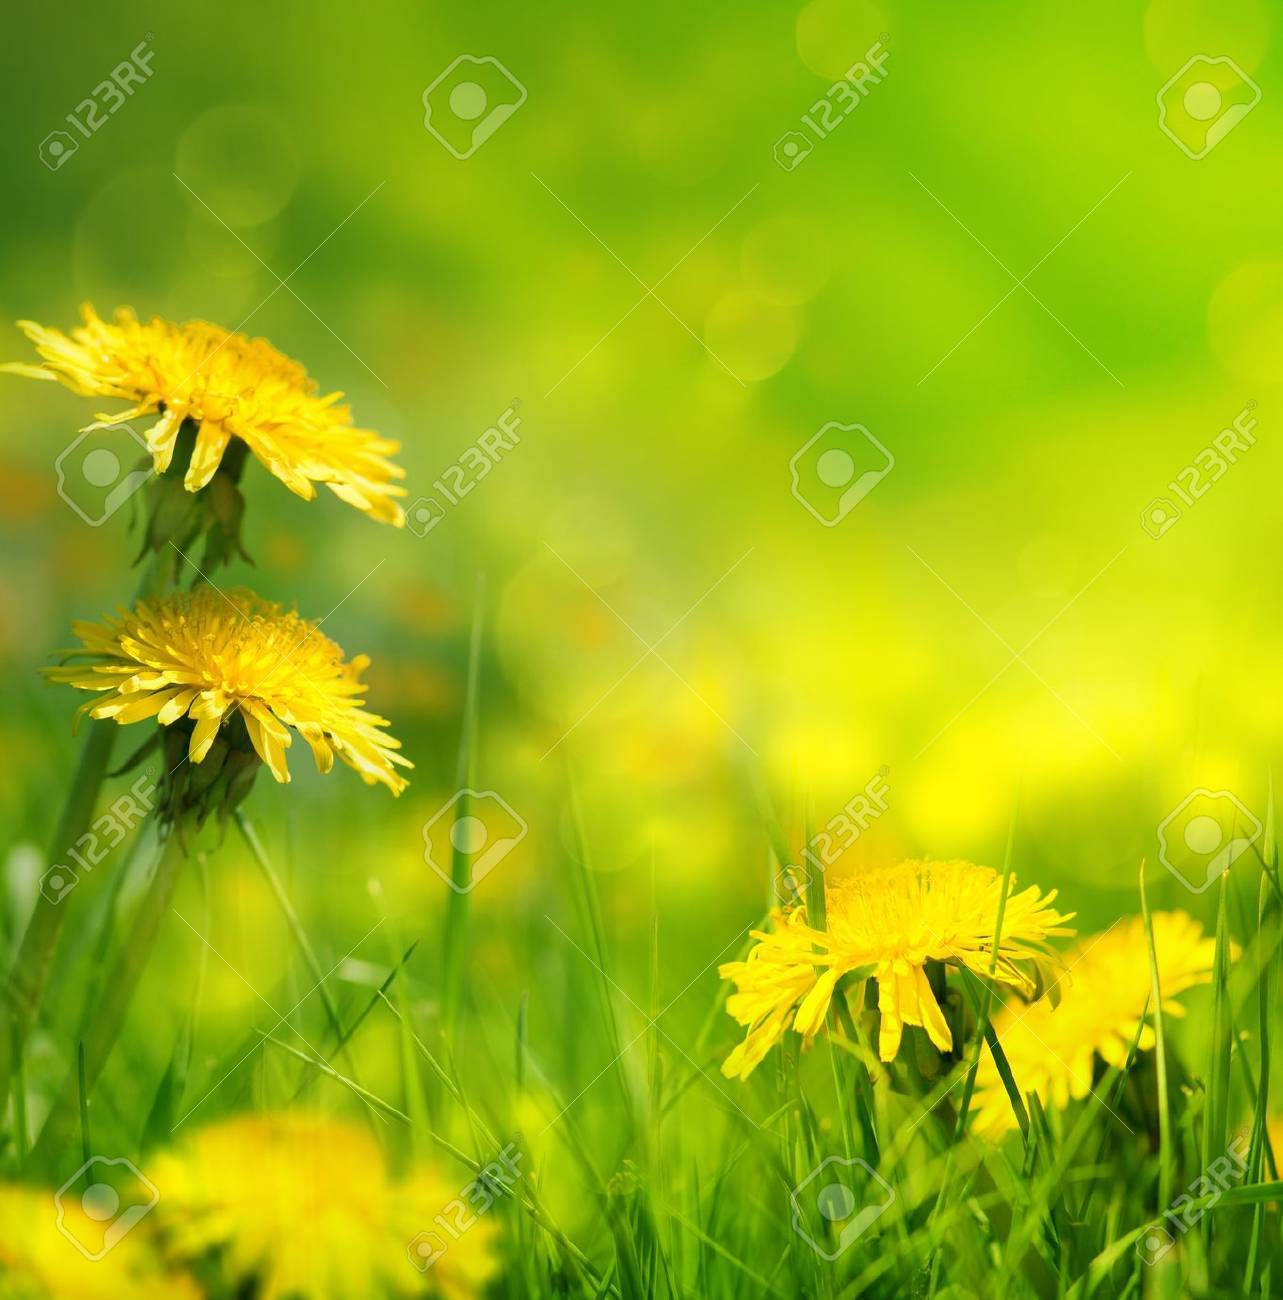 art Beautiful spring flowers background Stock Photo - 18019054